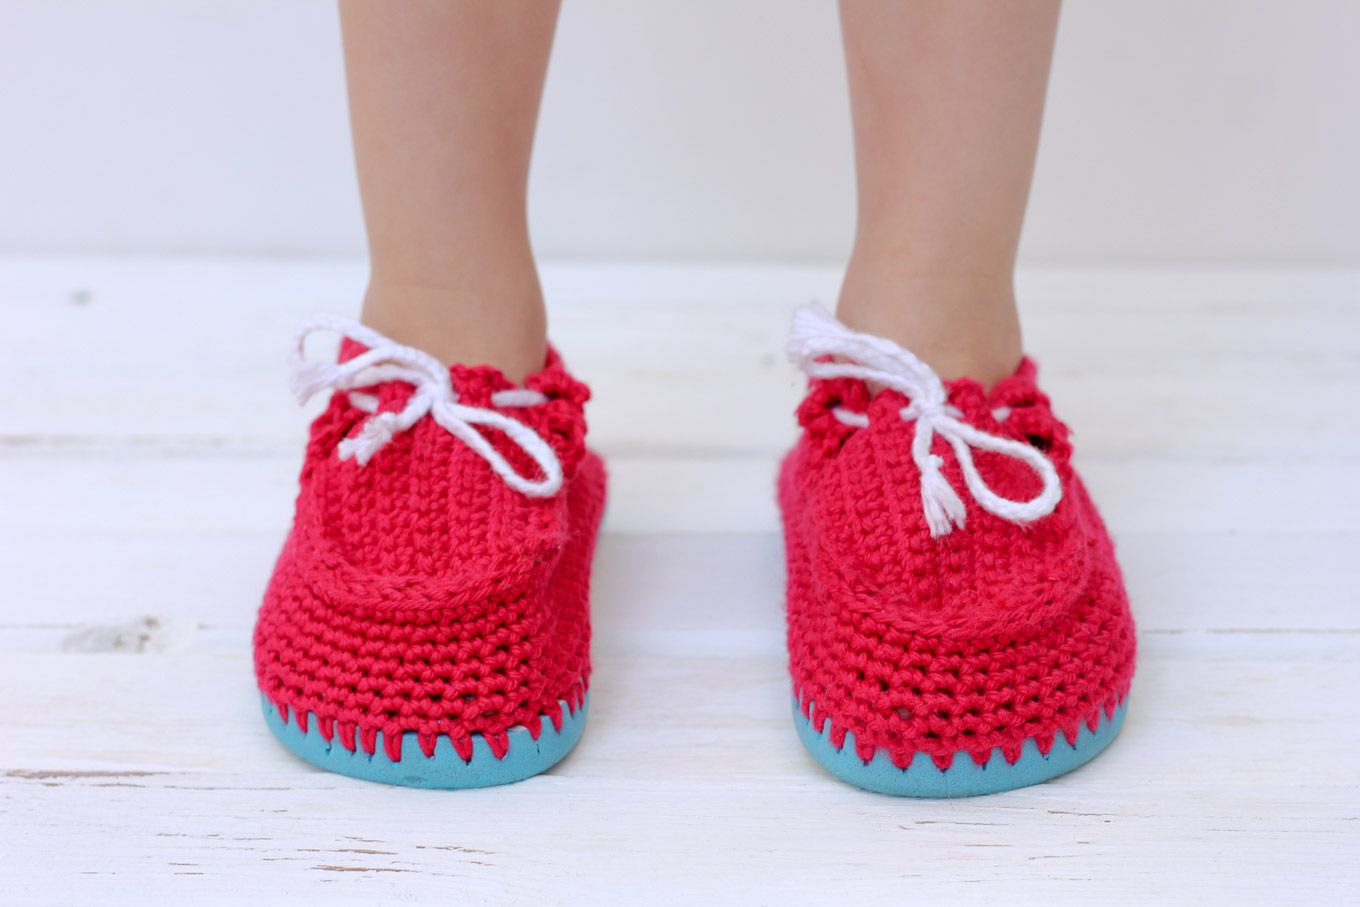 ab0ec85cd2a6 Turn cheap flip flops into crochet toddler slippers with this free pattern.  The boat shoe style works well for girls and boys. Quick and portable  project!